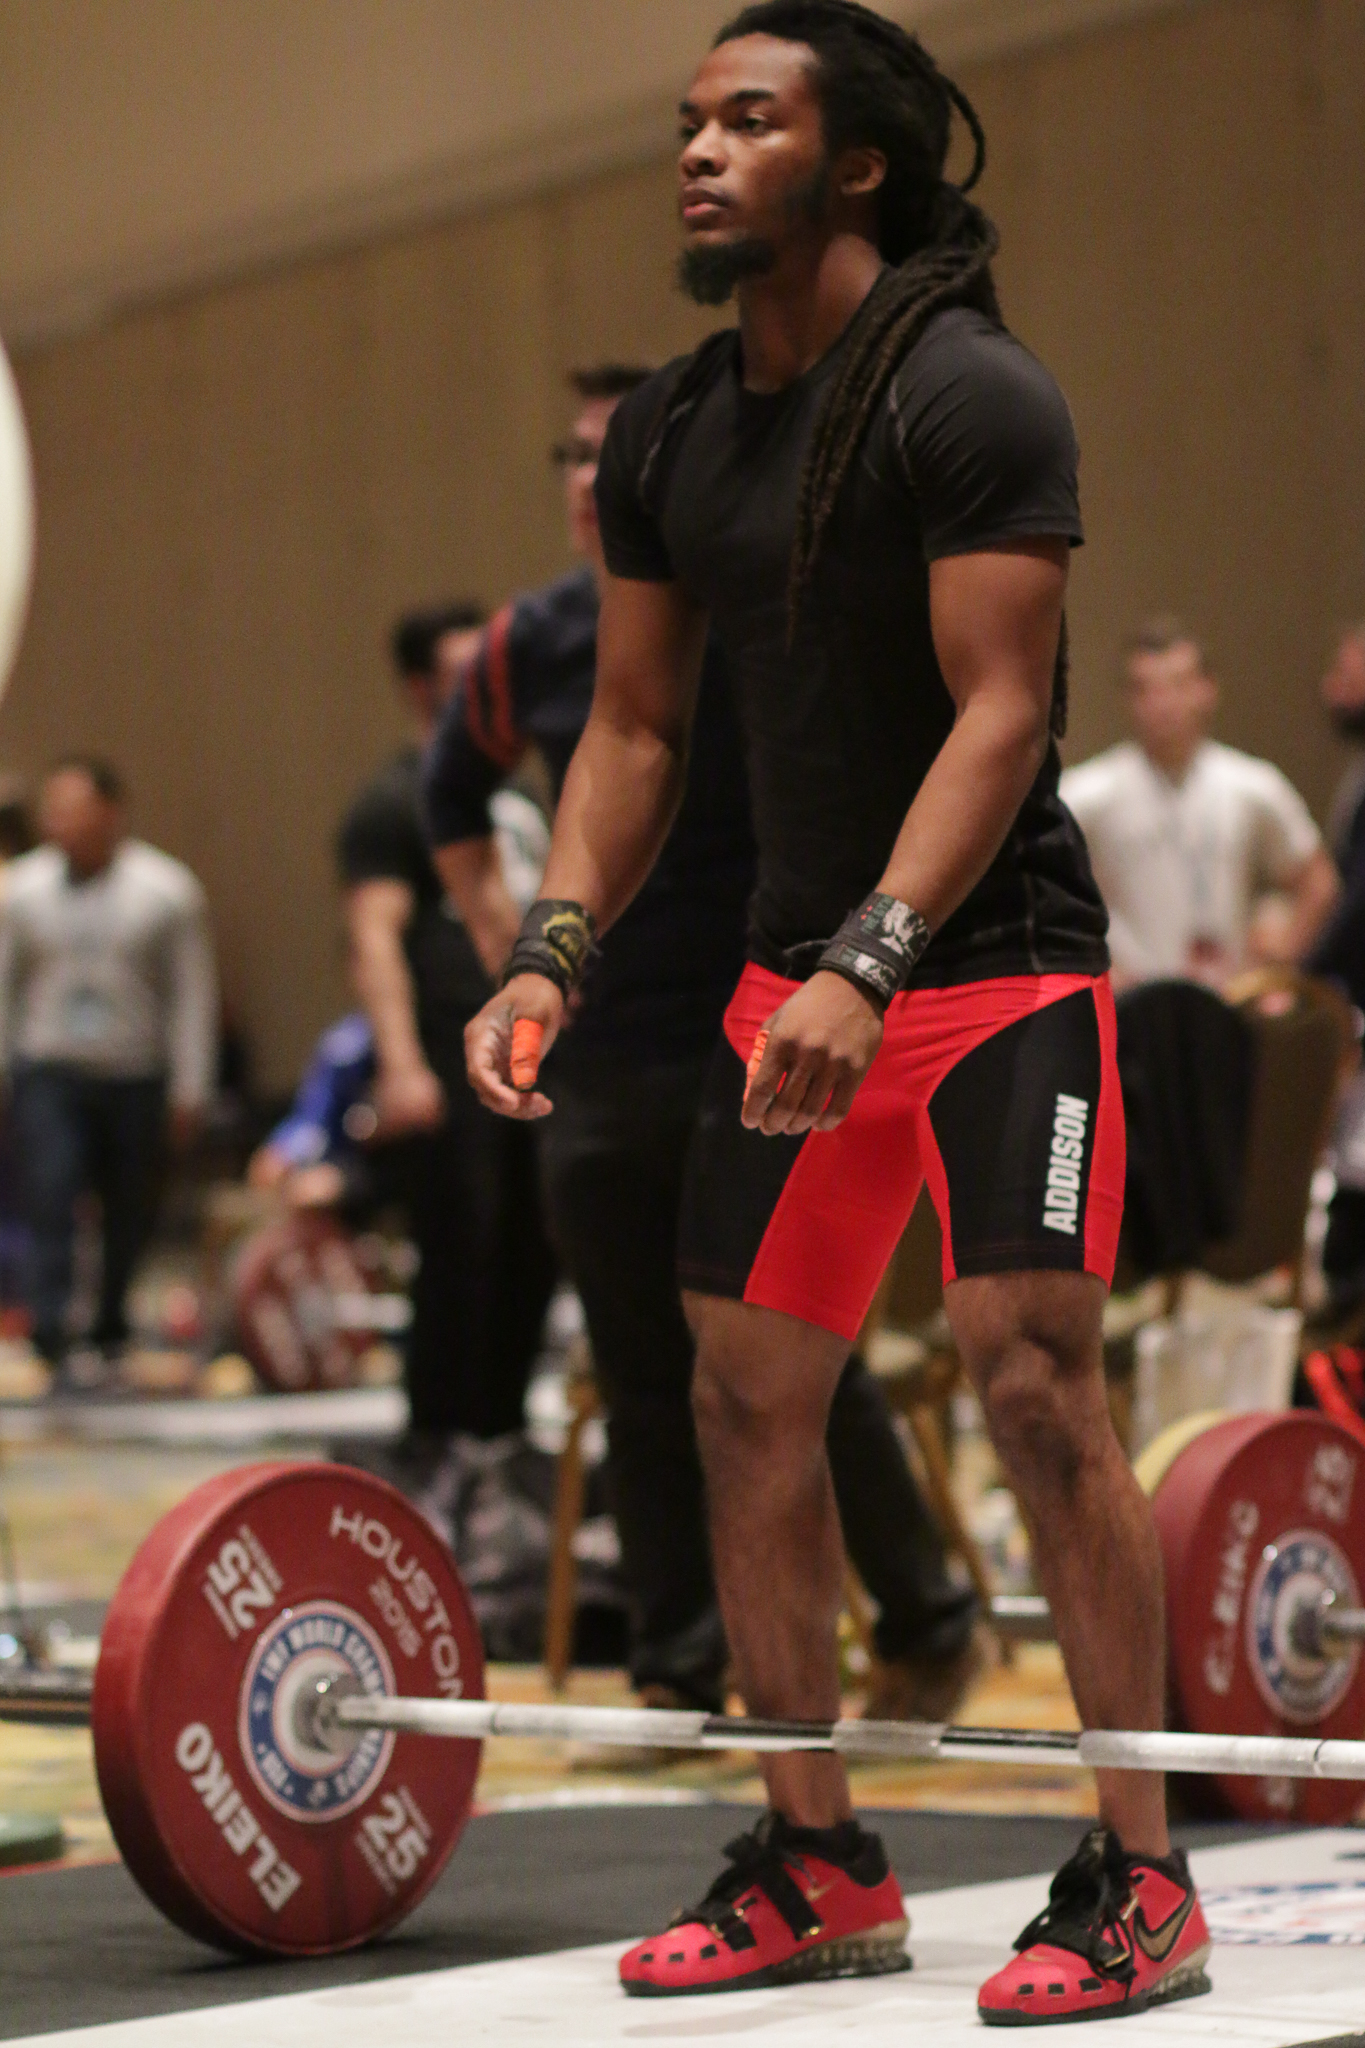 session-a-favorites-american-open-2016-weightlifting-photography (1 of 1).jpg